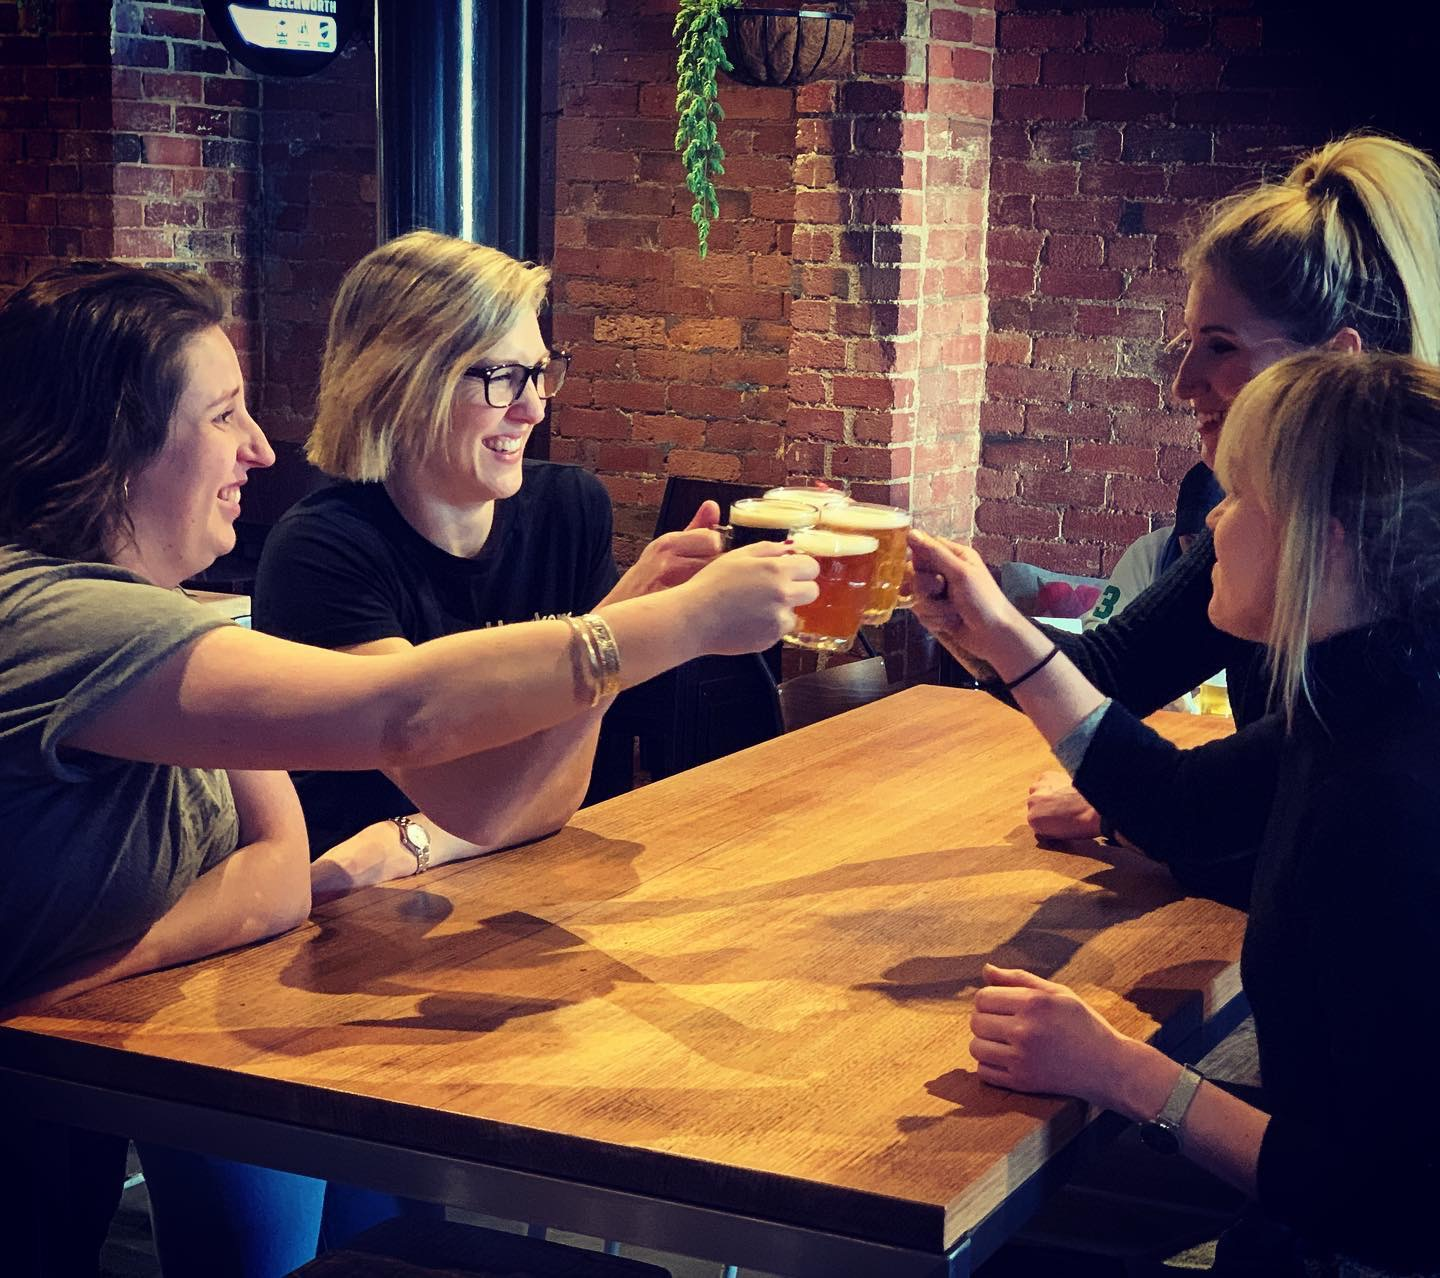 GIRLS DON'T LIKE BEER: SAT 17 AUG 3-5PM